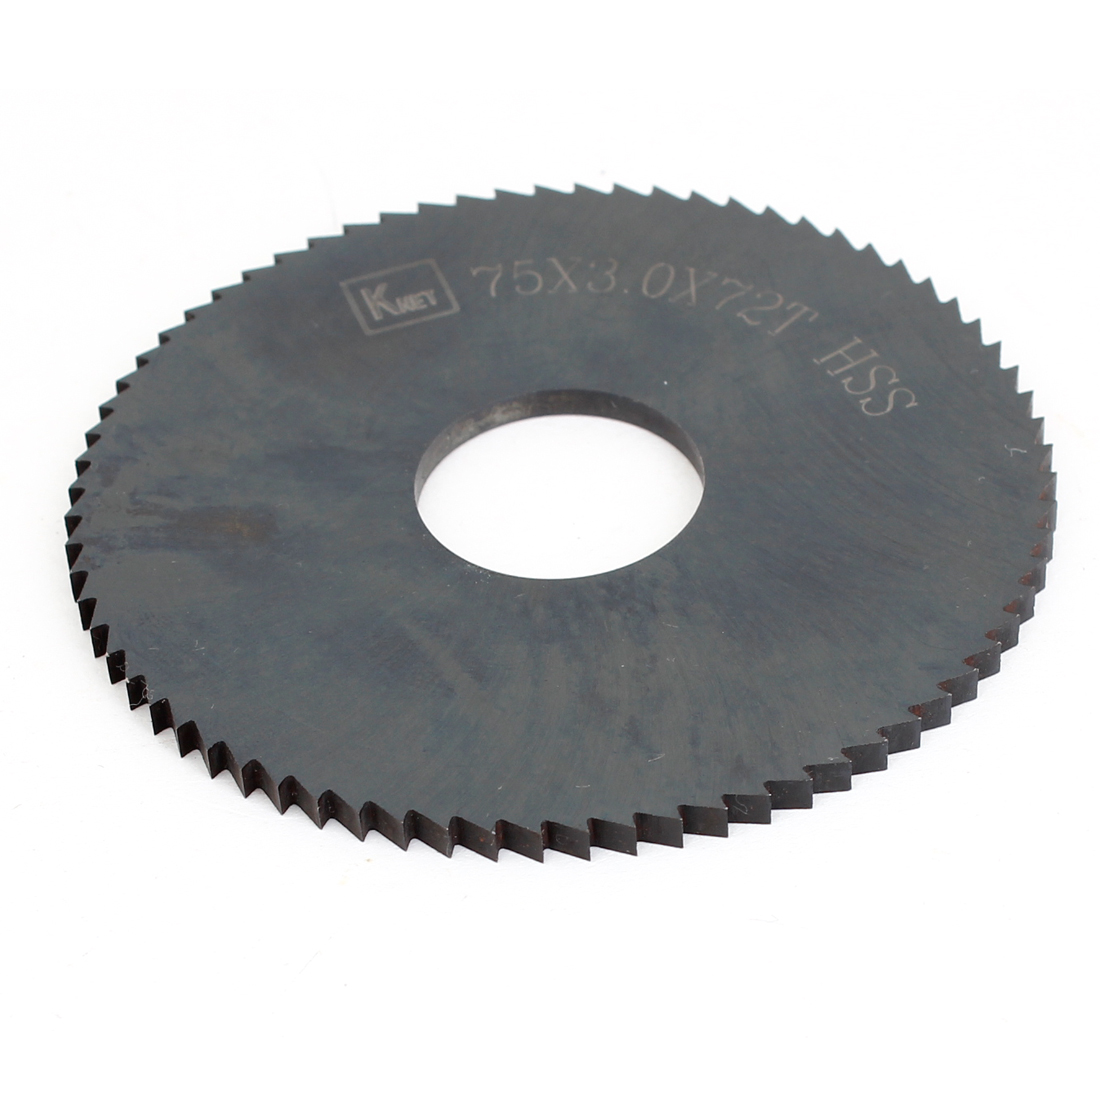 HSS 72 Teeth 75mm x 3mm x 22mm Slitting Saw Blade Replacement